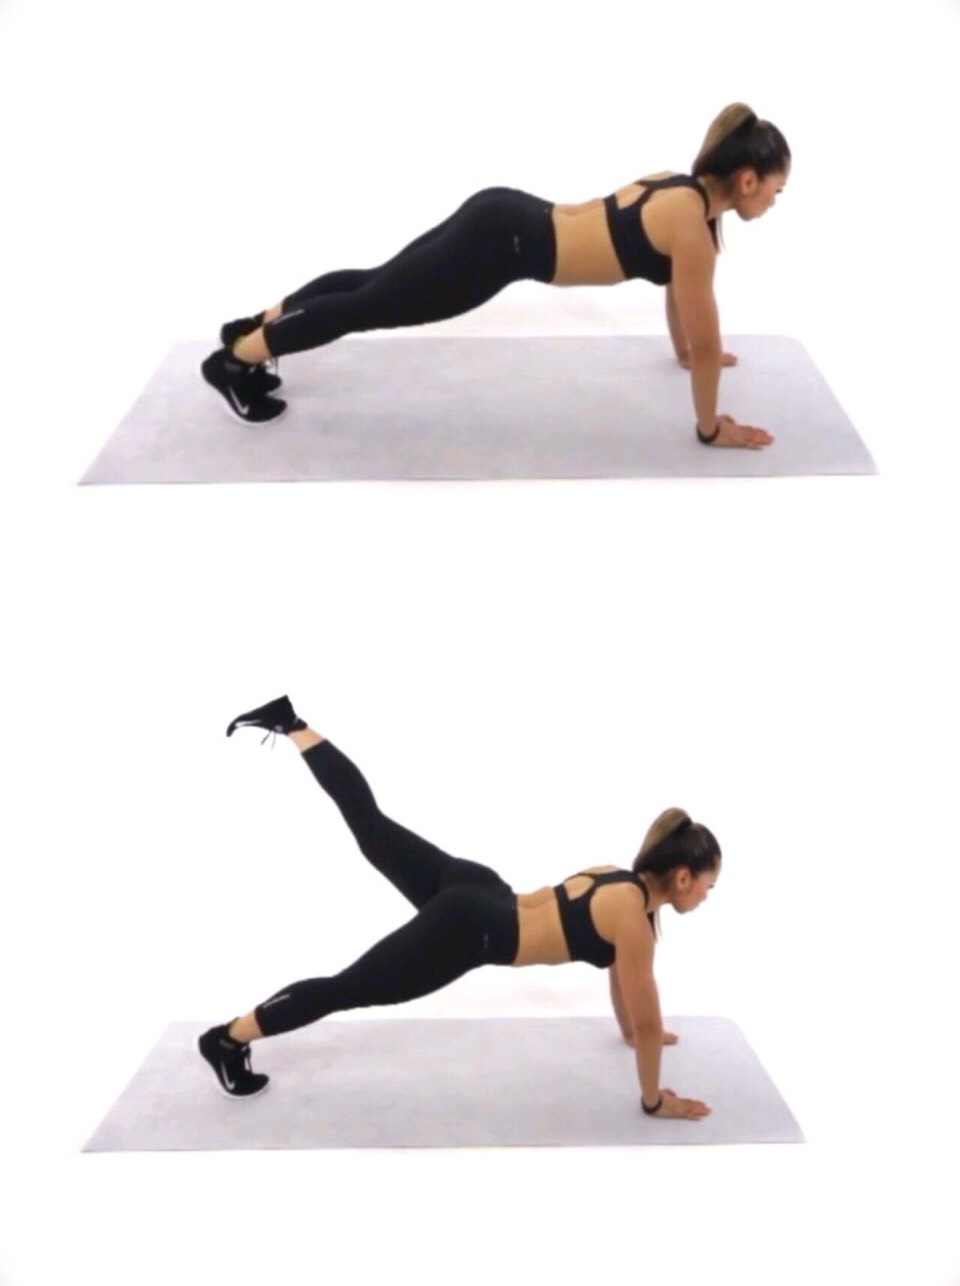 """Leg Pull Back"" - get in a push-up position - holding yourself up, lift one leg up in the air as high and straight as you can - do each leg 30 times or more if you'd like."